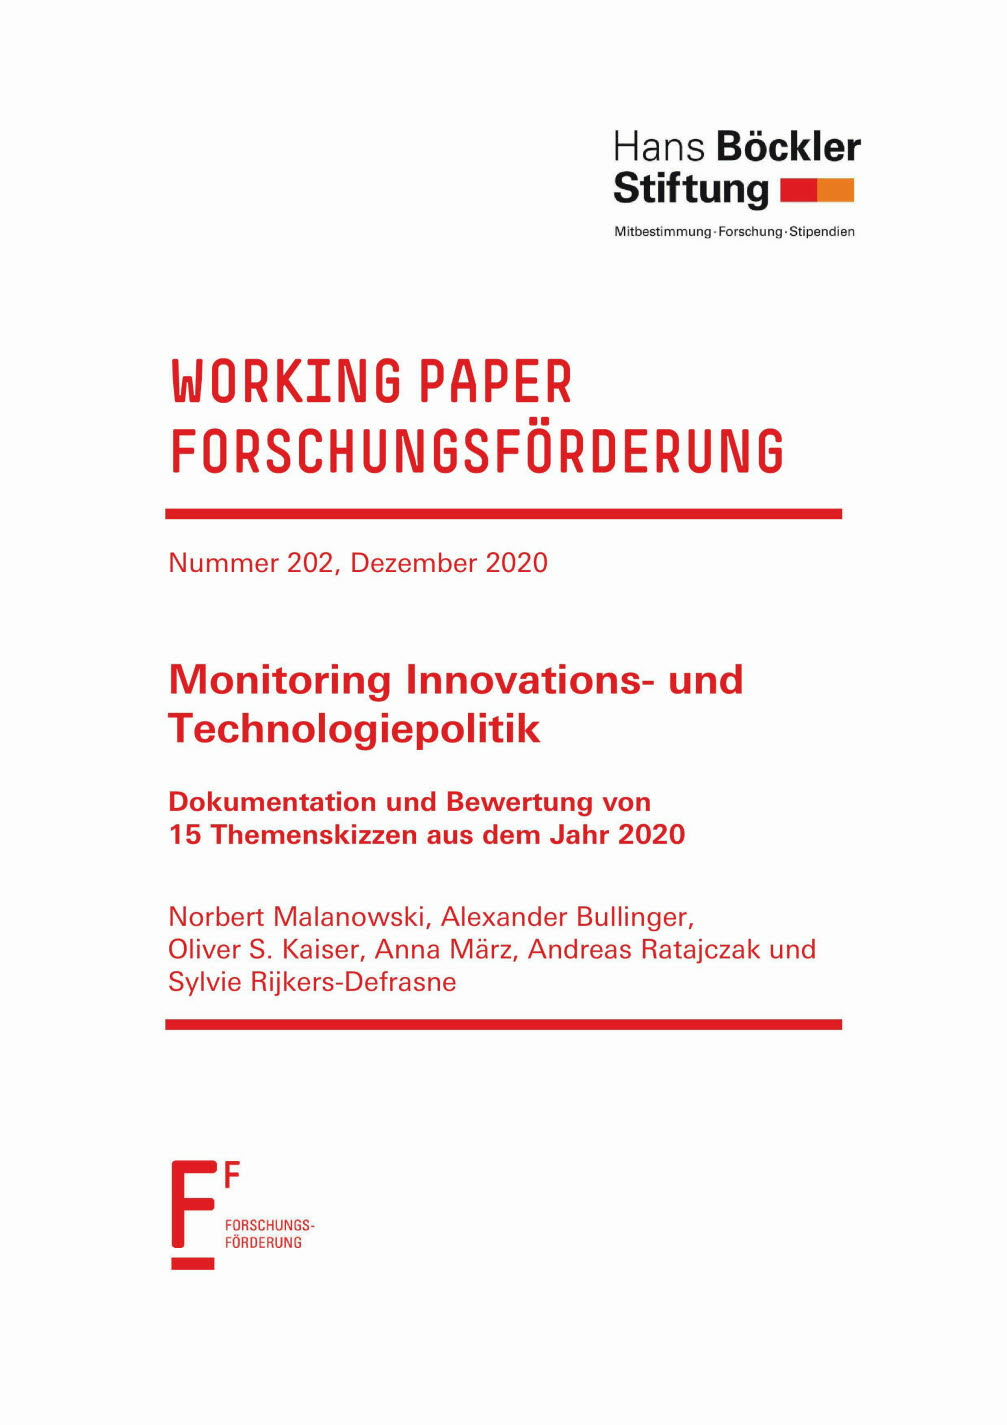 Monitoring Innovations- und Technologiepolitik